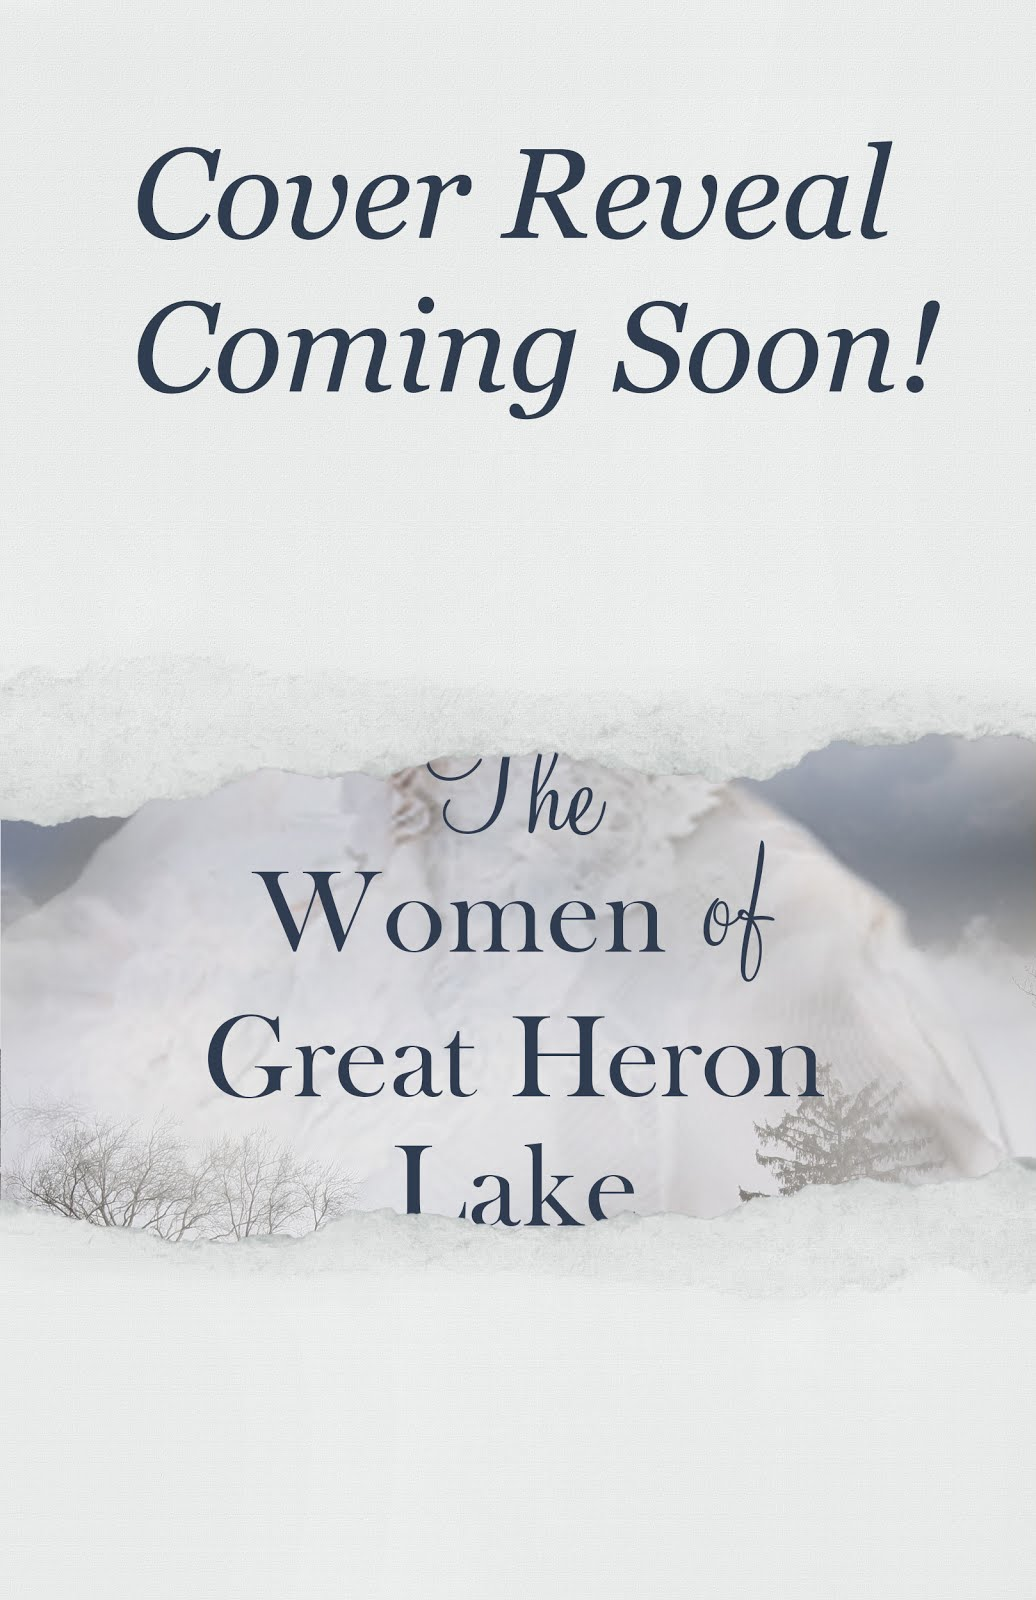 Coming Soon: The Women of Great Heron Lake